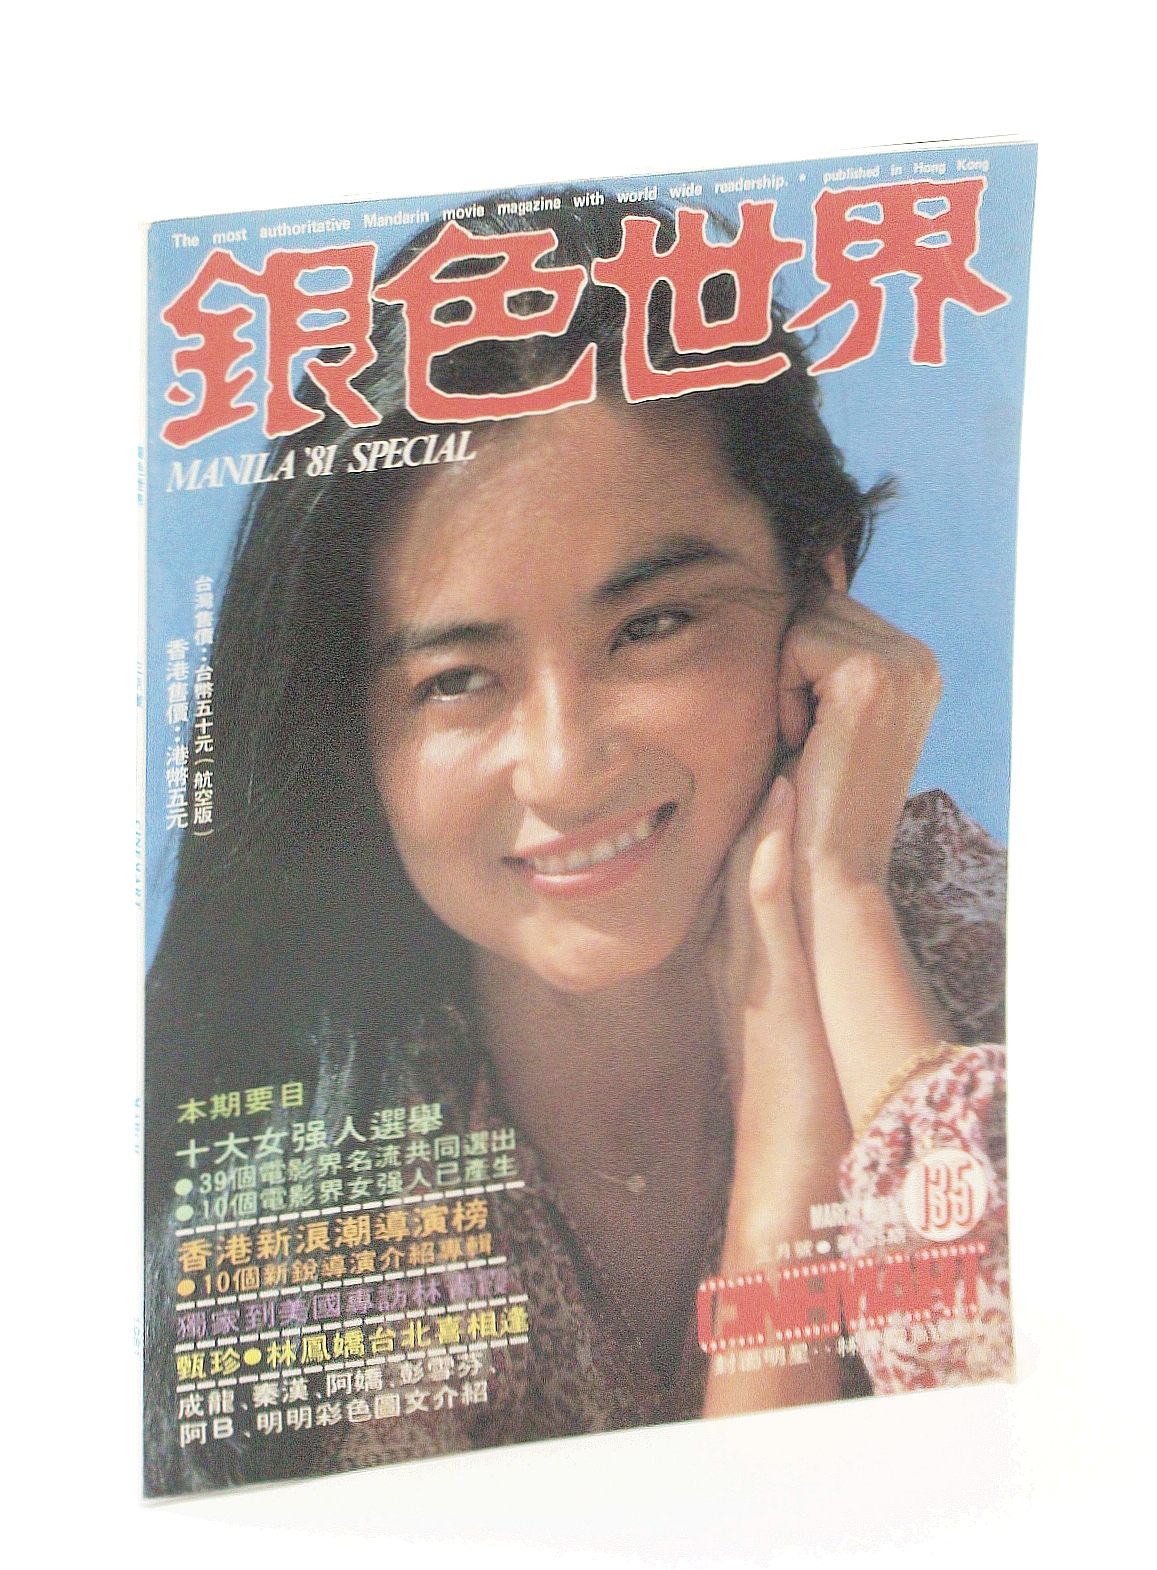 Image for Cinemart - The Most Authoritative Chinese Movie Magazine, March [Mar.] 1981, No. 135 - Manila '81 Special